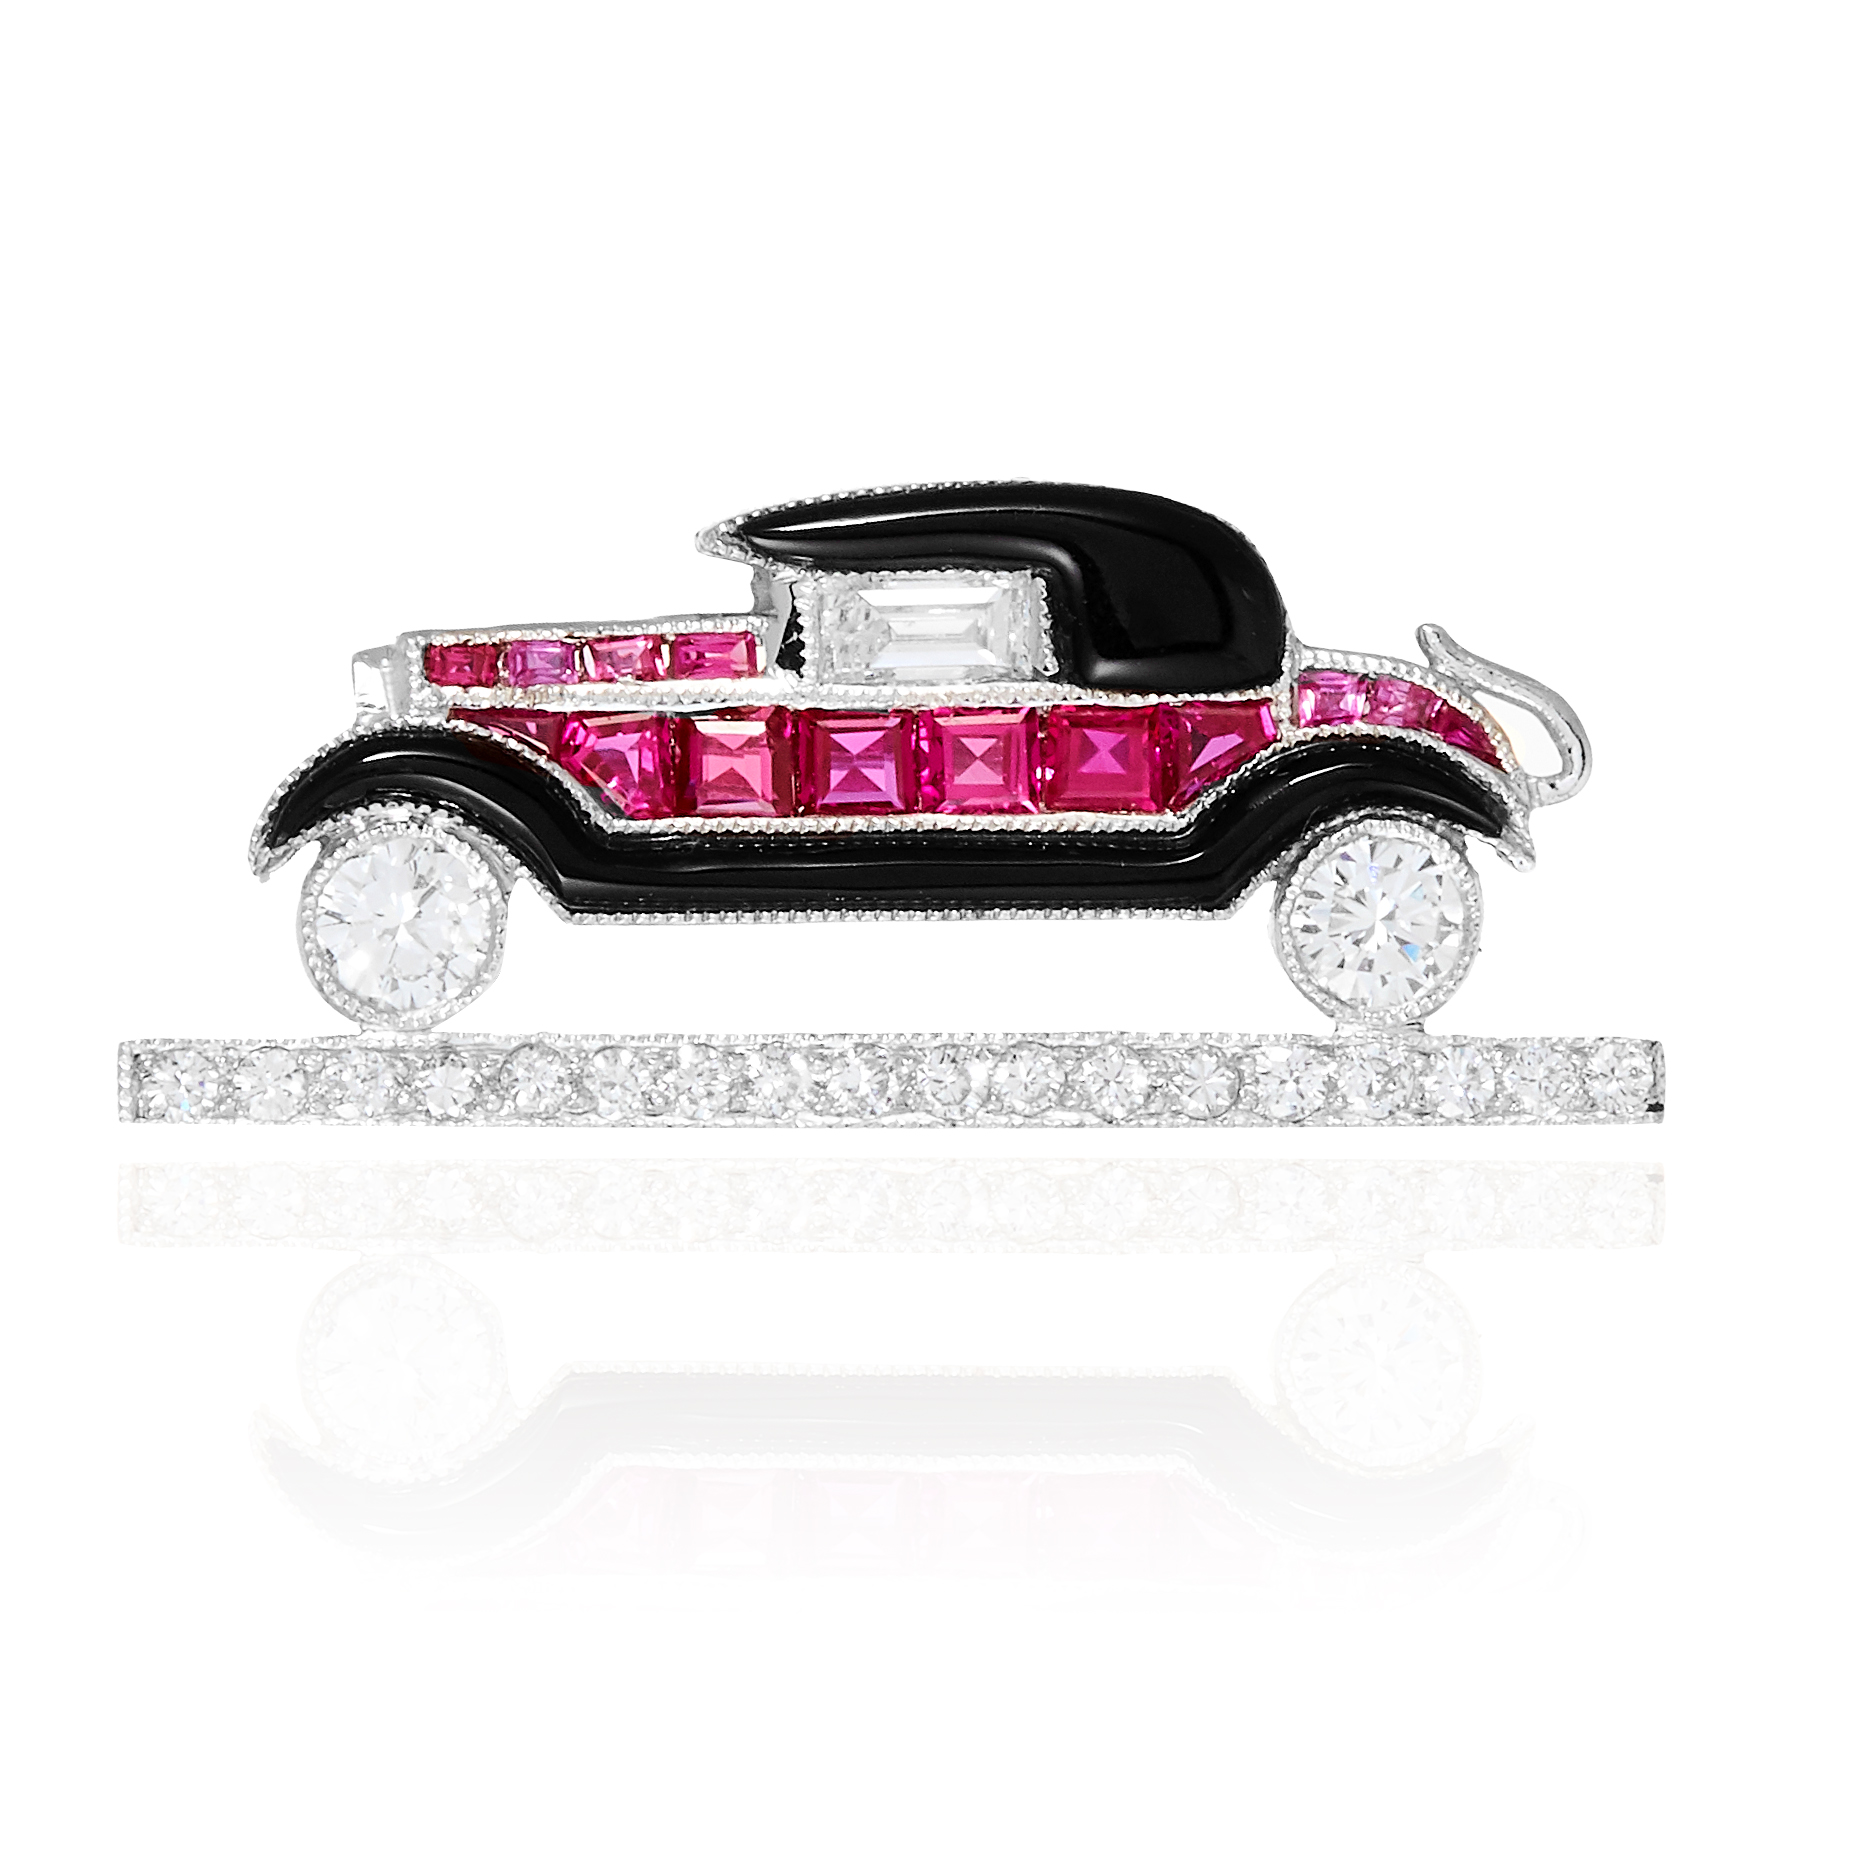 AN ONYX, RUBY AND DIAMOND CAR BROOCH in gold or platinum, jewelled with round cut diamonds,